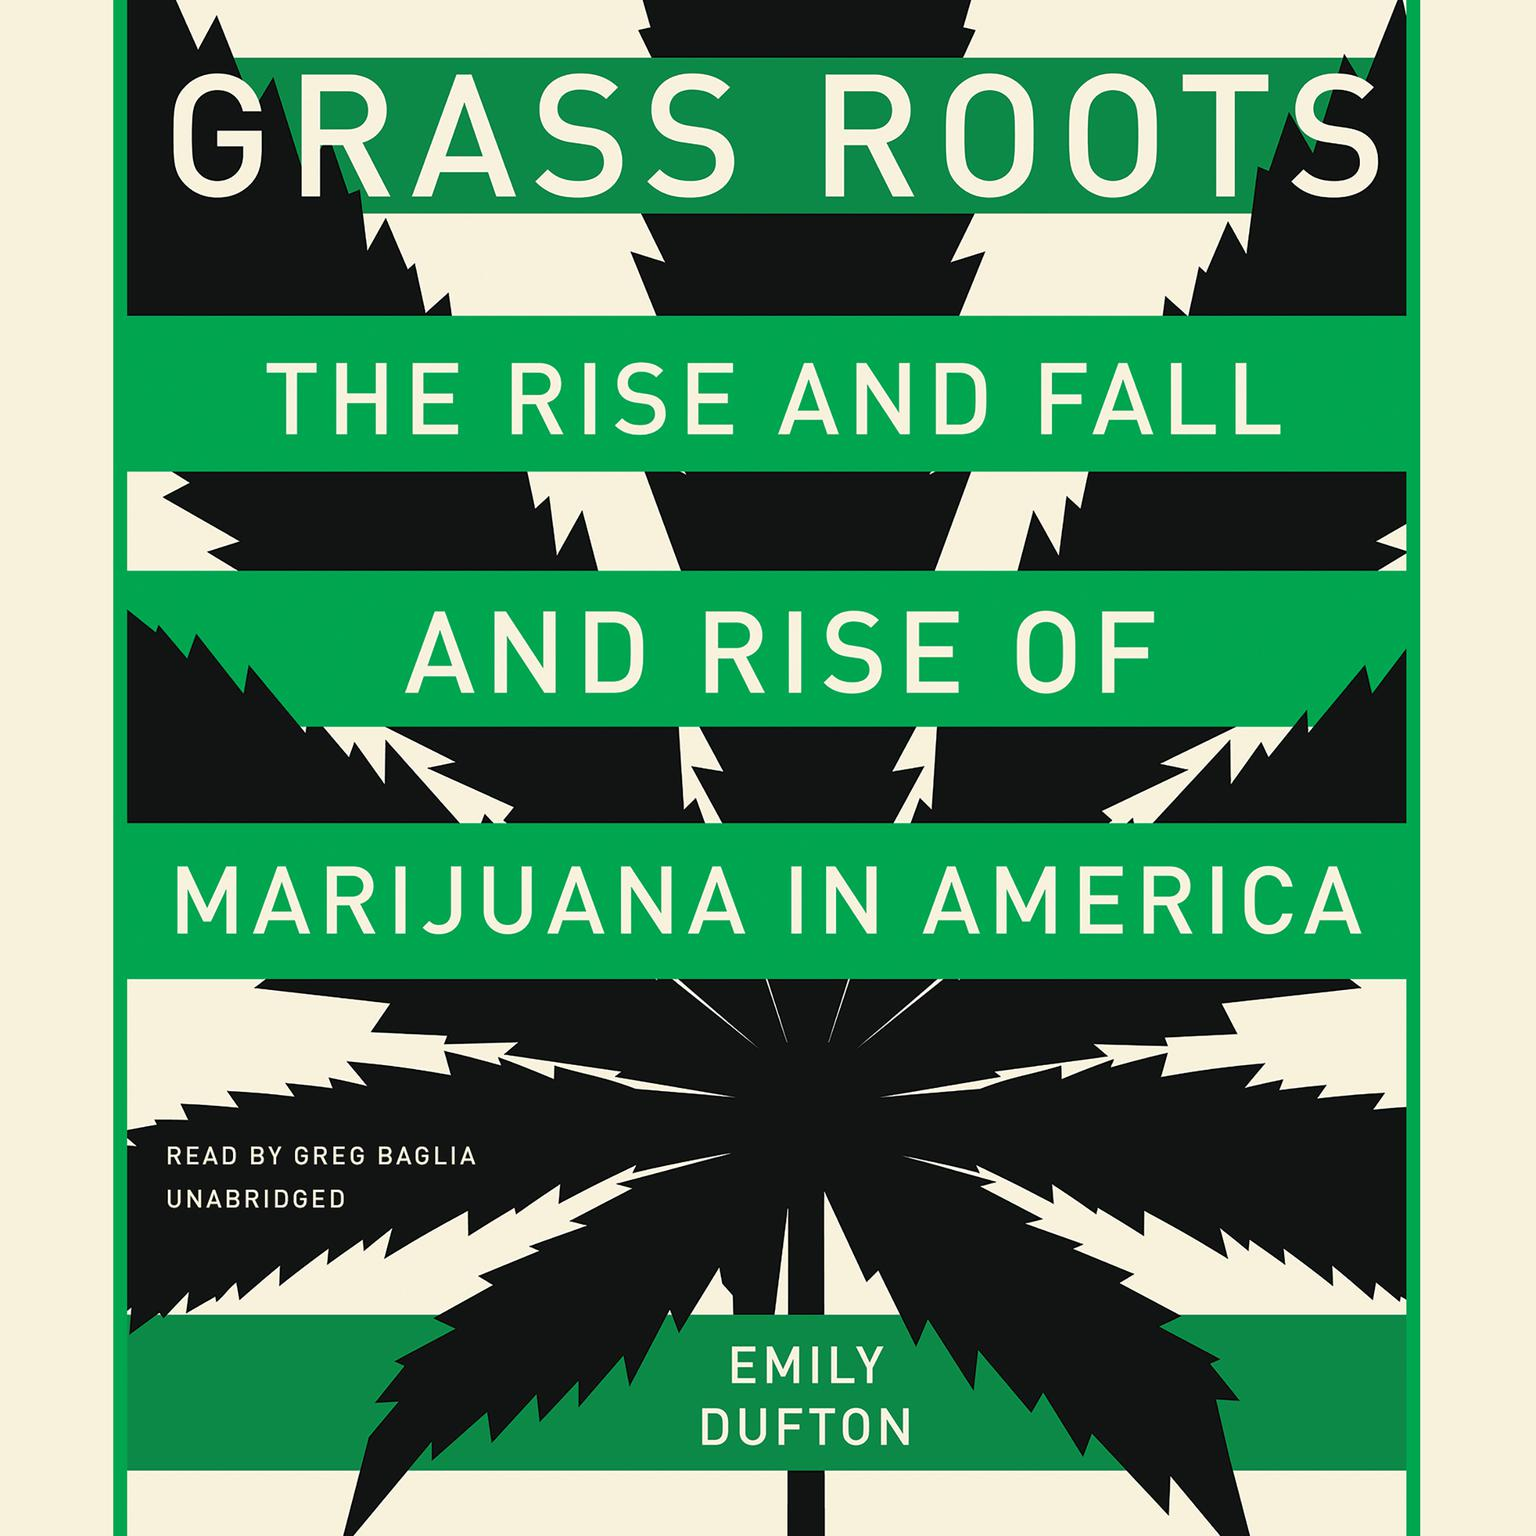 Grass Roots: The Rise and Fall and Rise of Marijuana in America Audiobook, by Emily Dufton